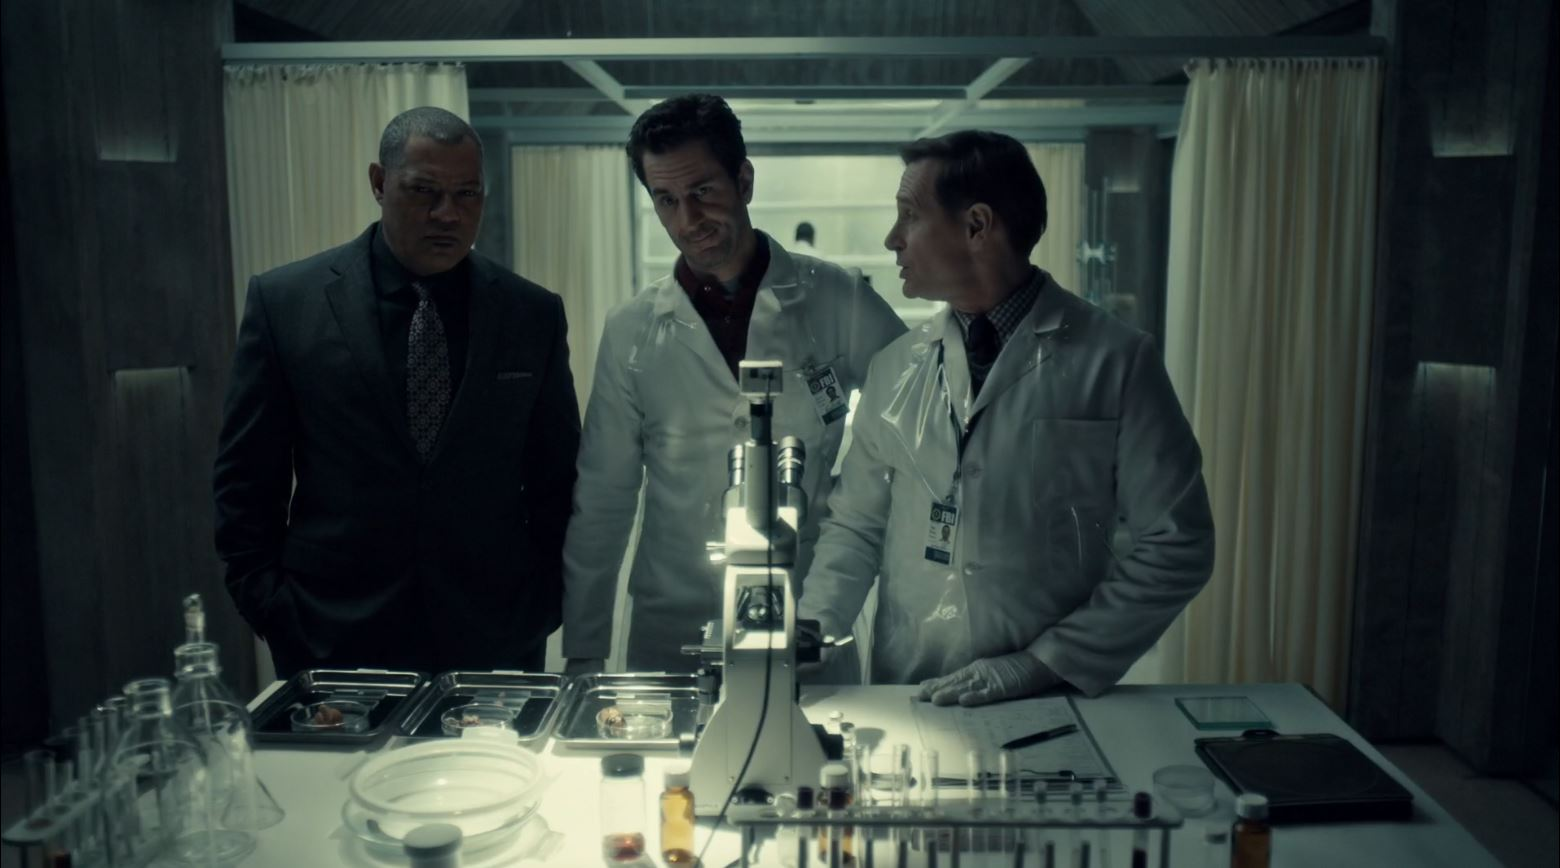 Hannibal S2Ep6 Futamono Review - Running the tests on hannibal's food